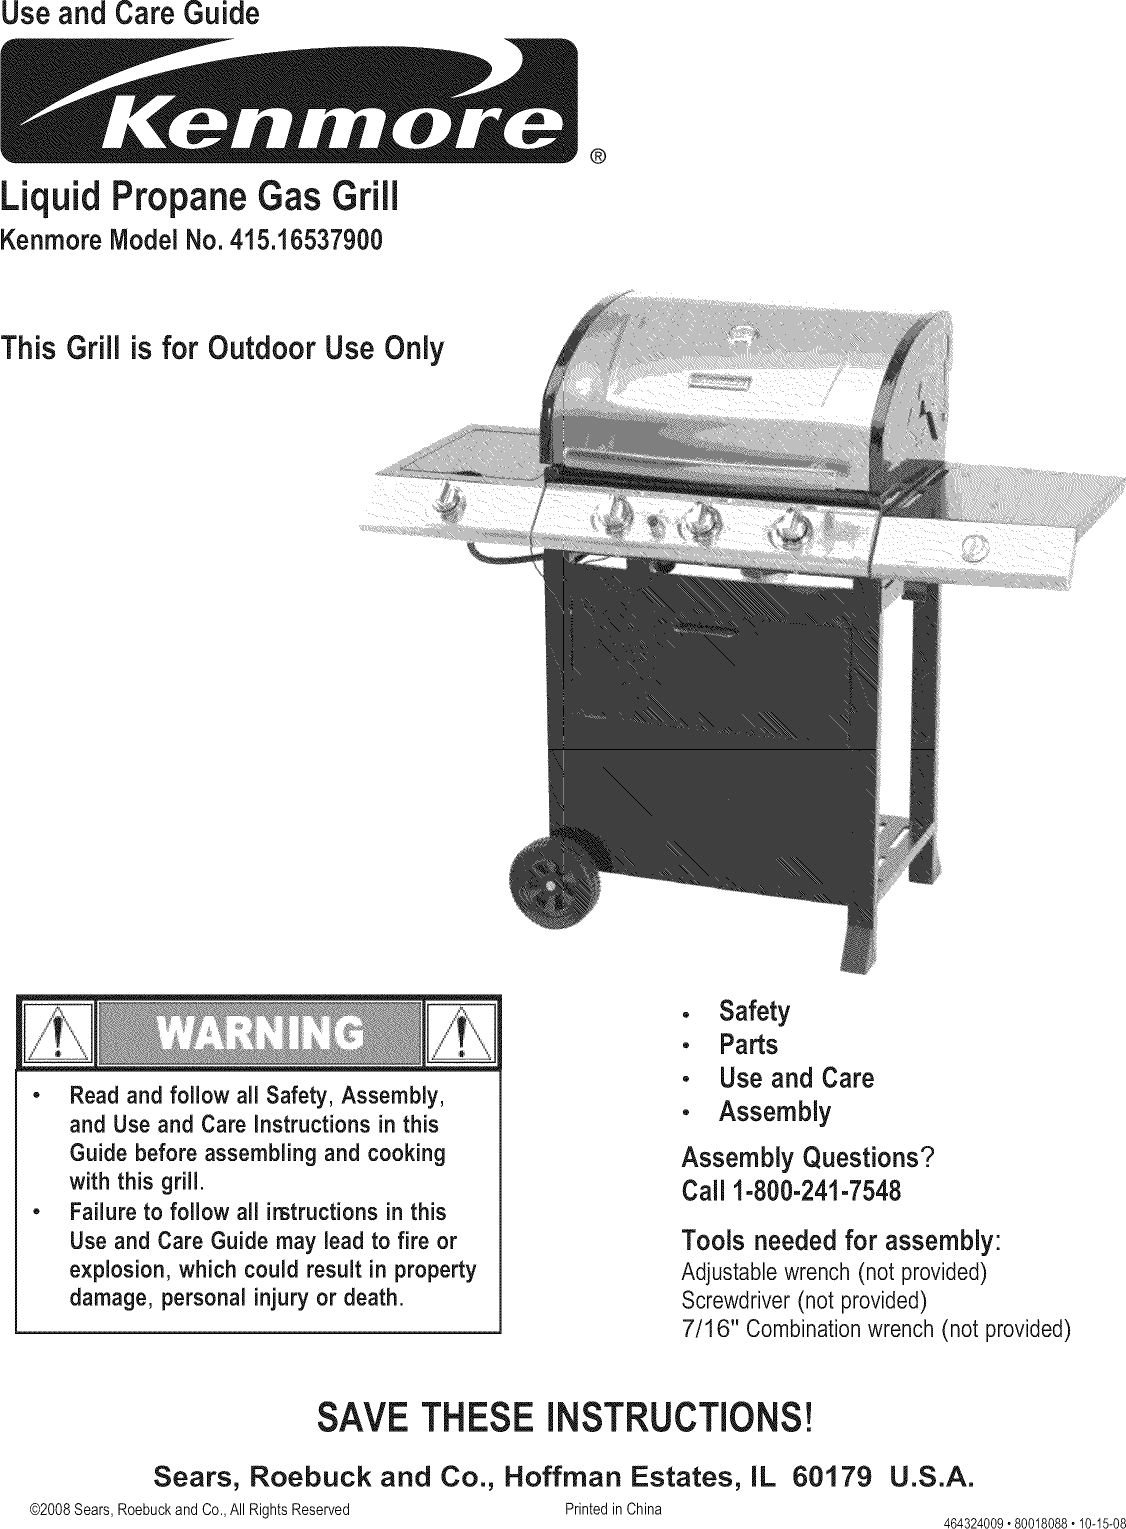 kenmore 41516537900 user manual gas grill manuals and guides l0812308 rh usermanual wiki Kenmore Elite Grill Kenmore Elite Grill